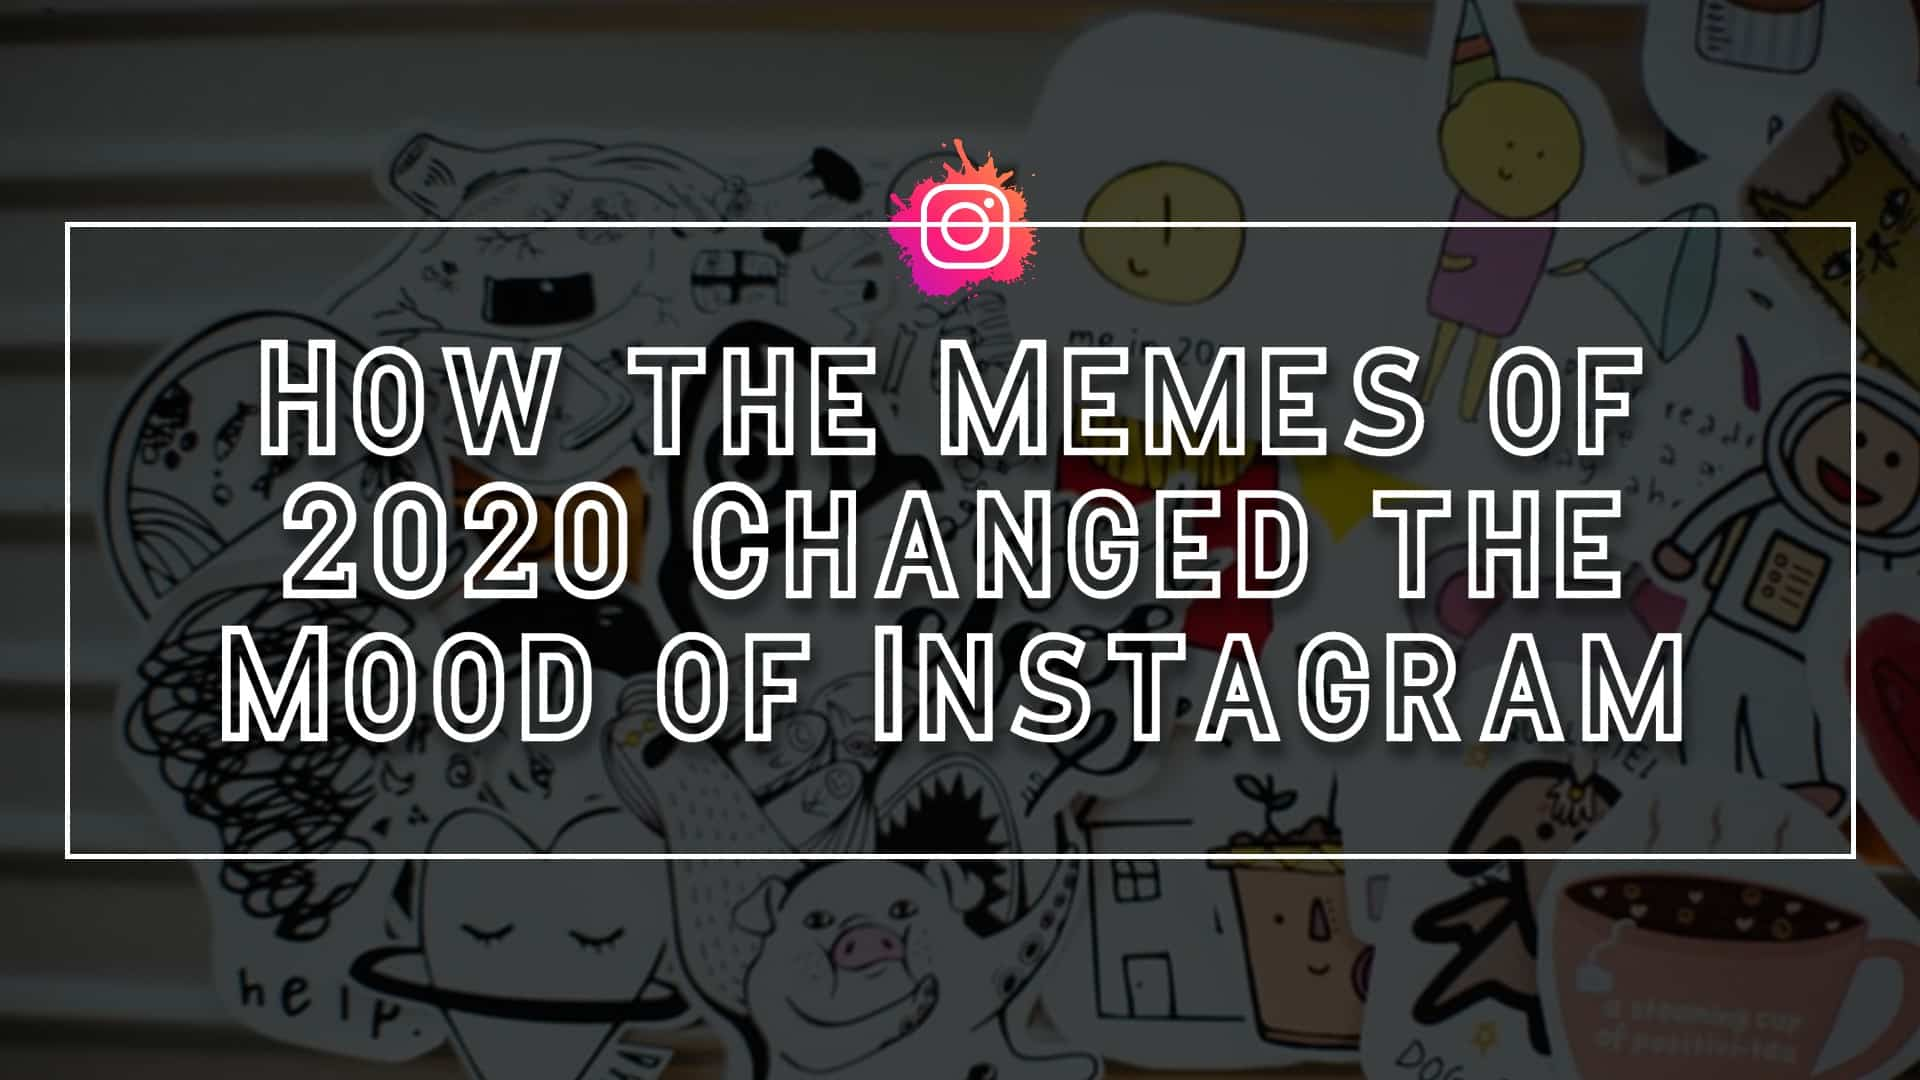 How-the-Memes-of-2020-Changed-the-Mood-of-Instagram.jpg